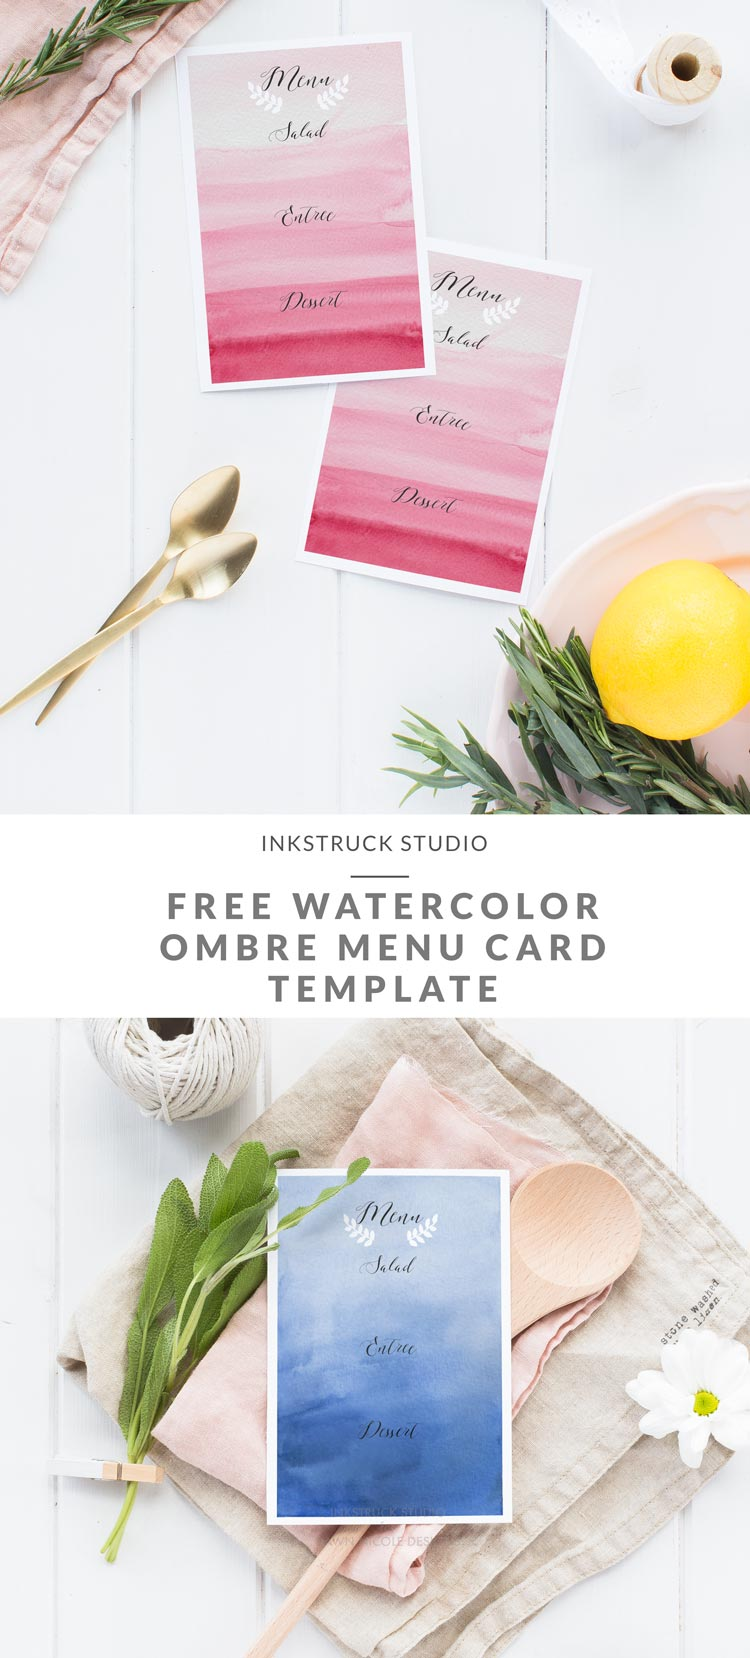 Free watercolor ombre background menu card template- Inkstruck Studio